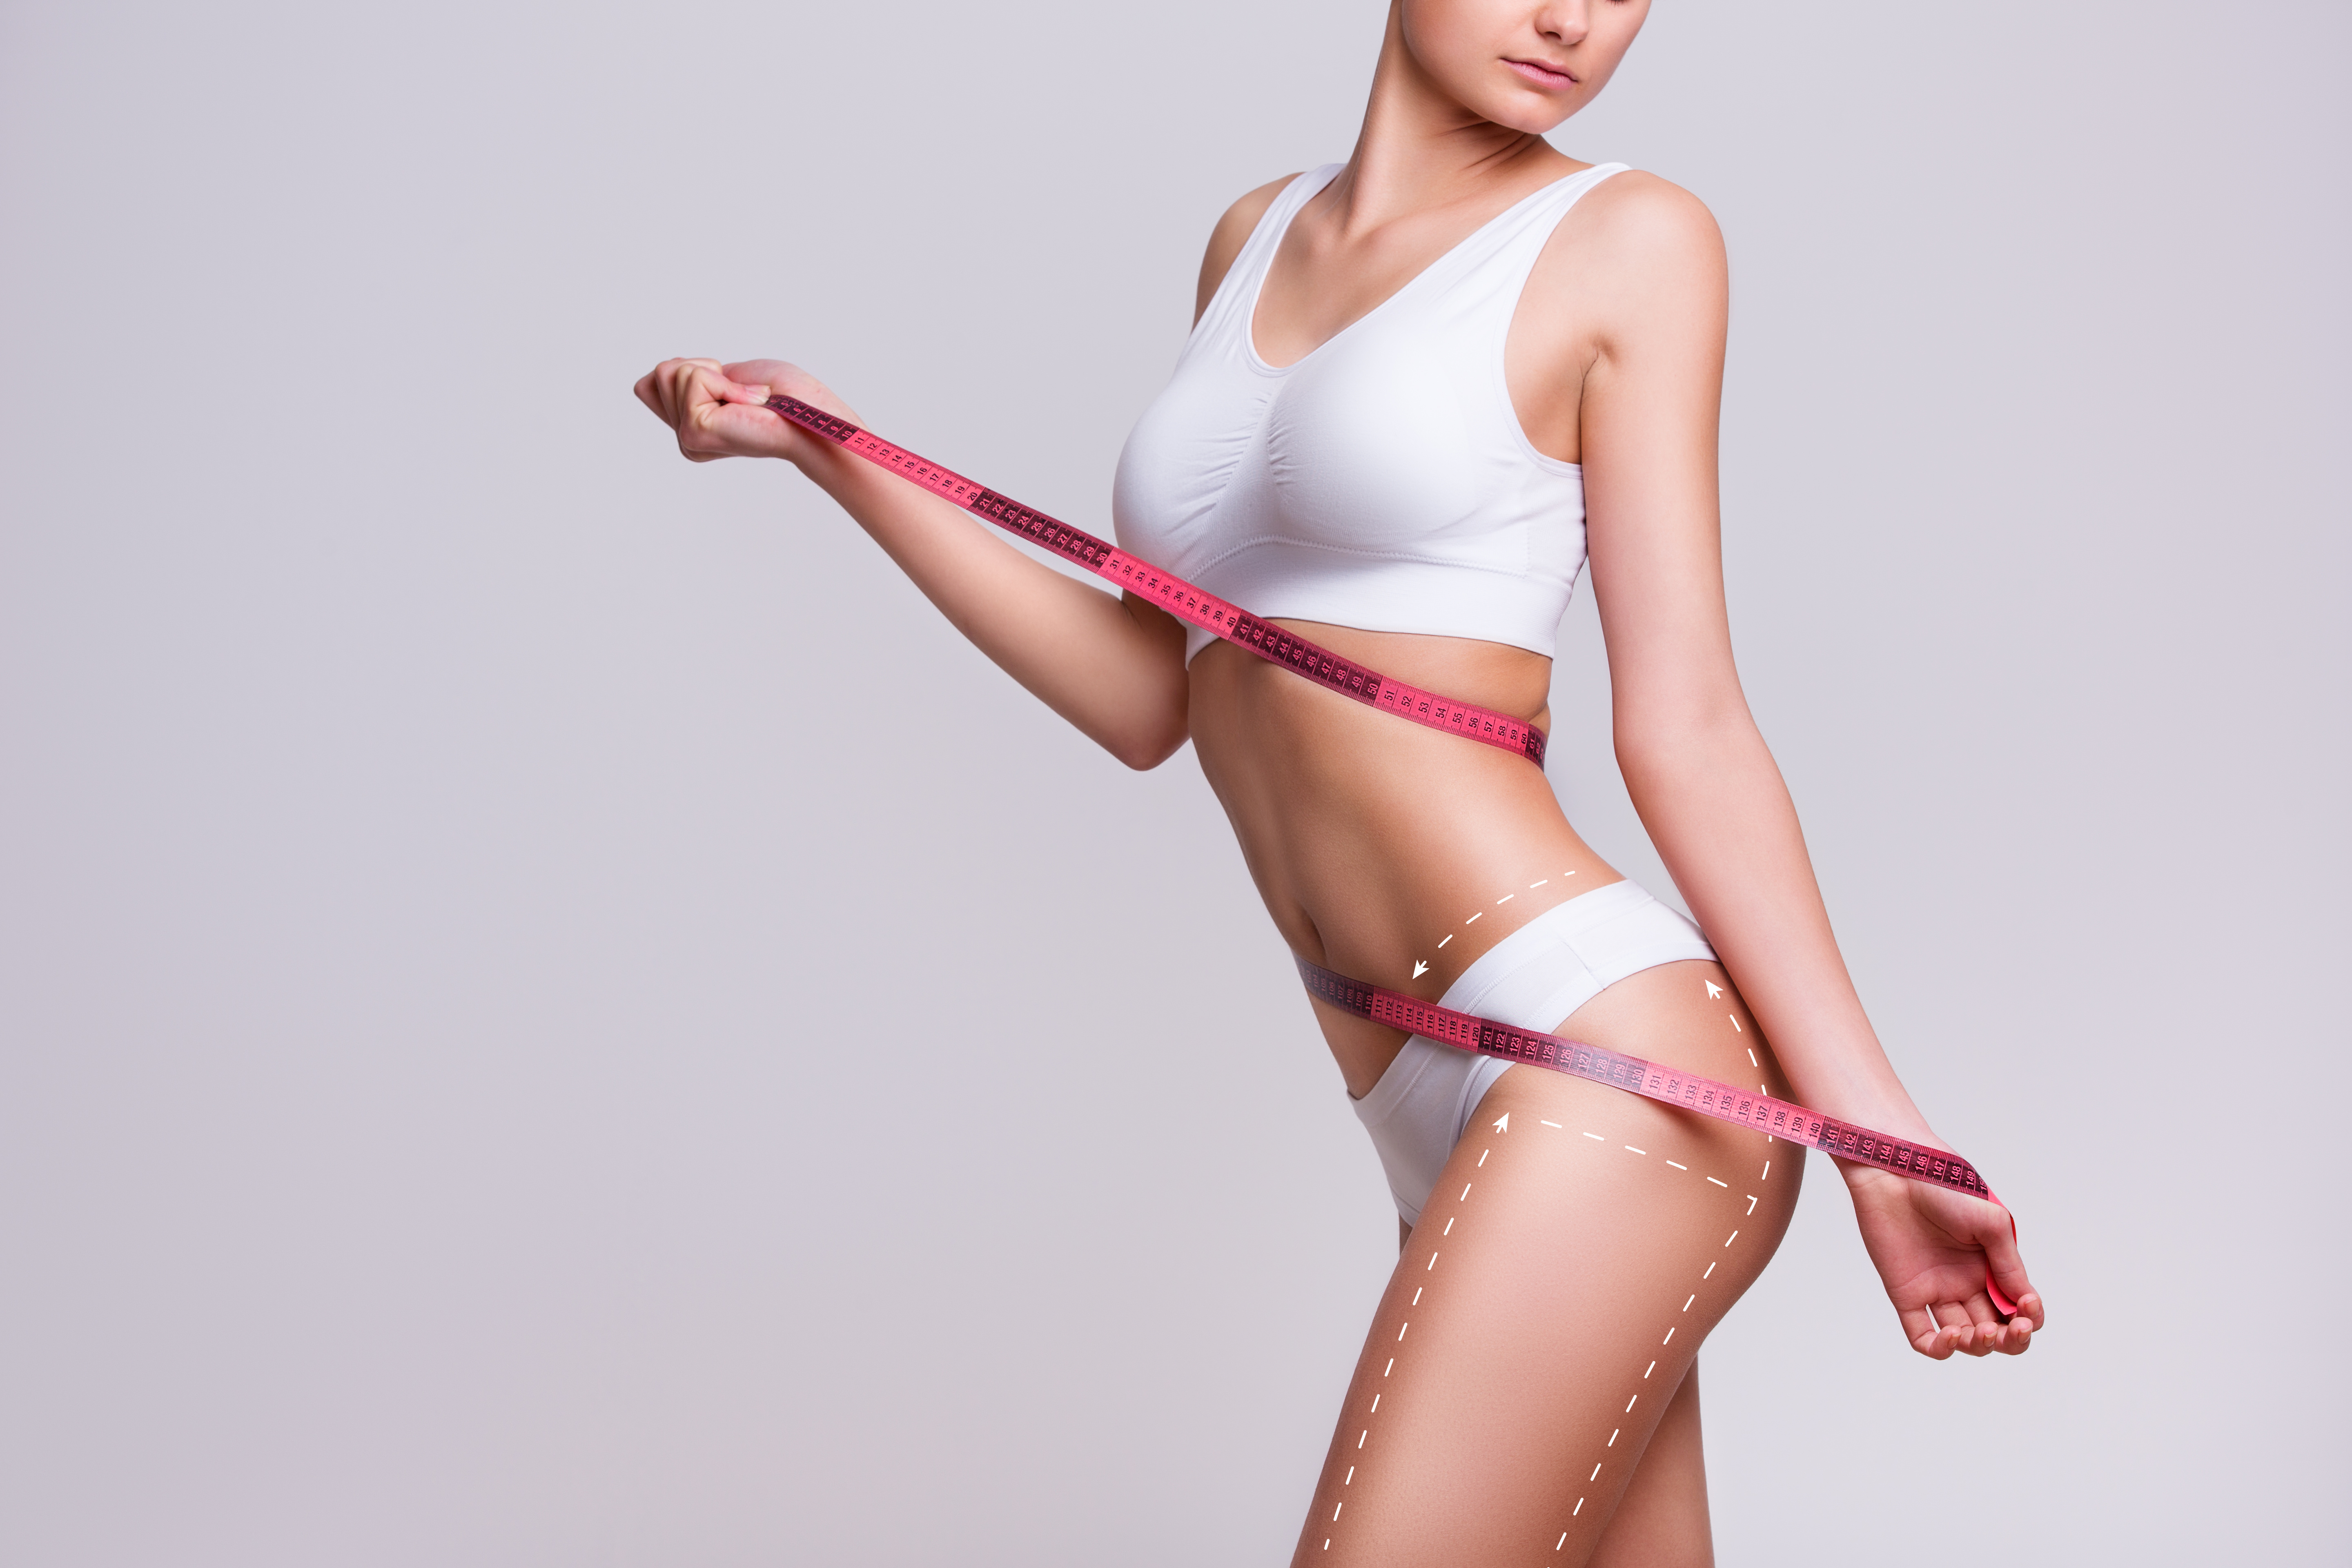 Female body cosmetic surgery and skin liposuction.